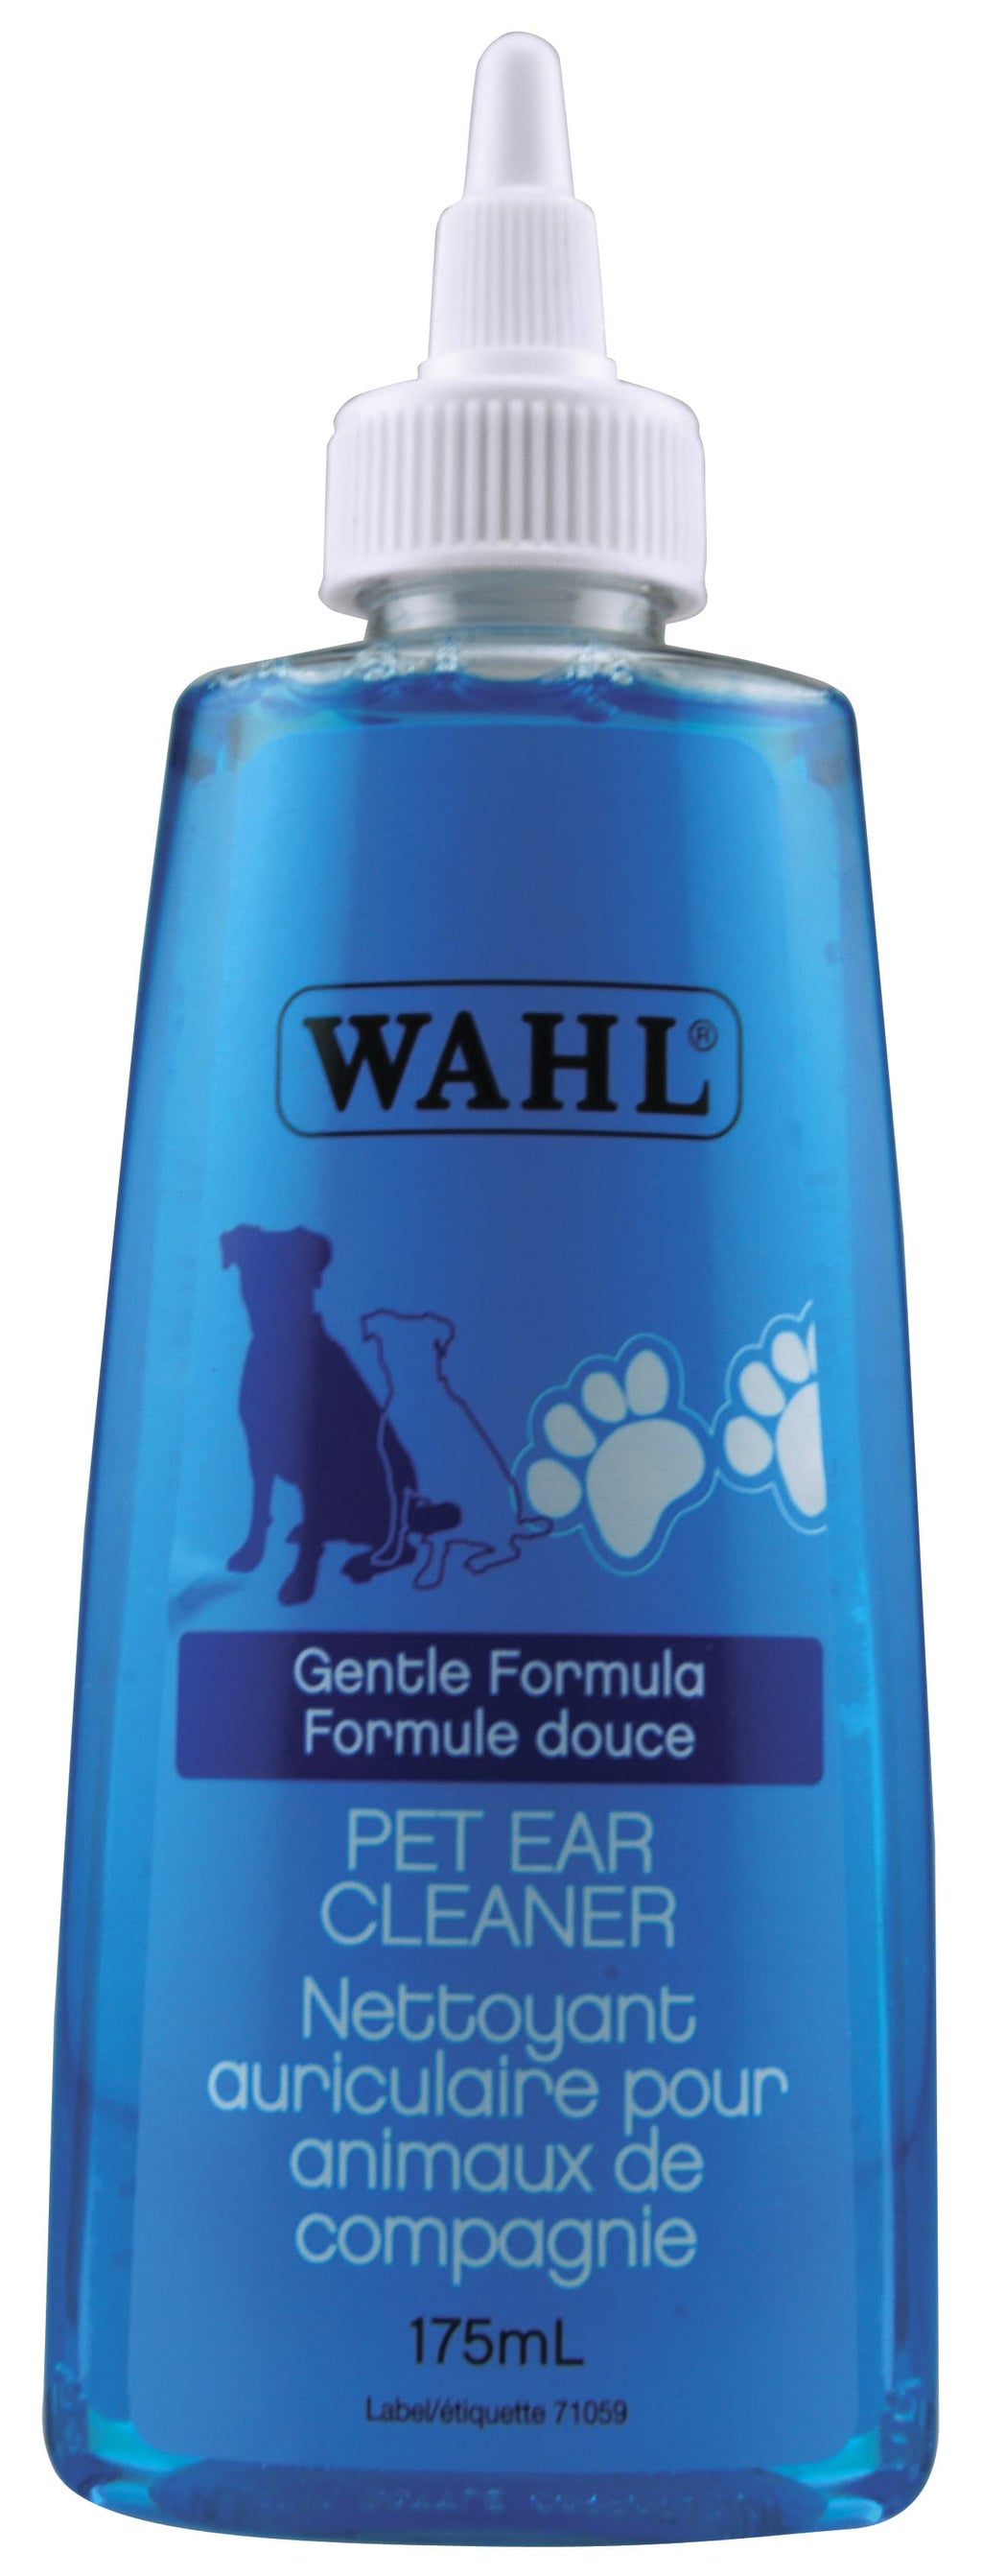 Wahl Gentle Pet Ear Cleaner